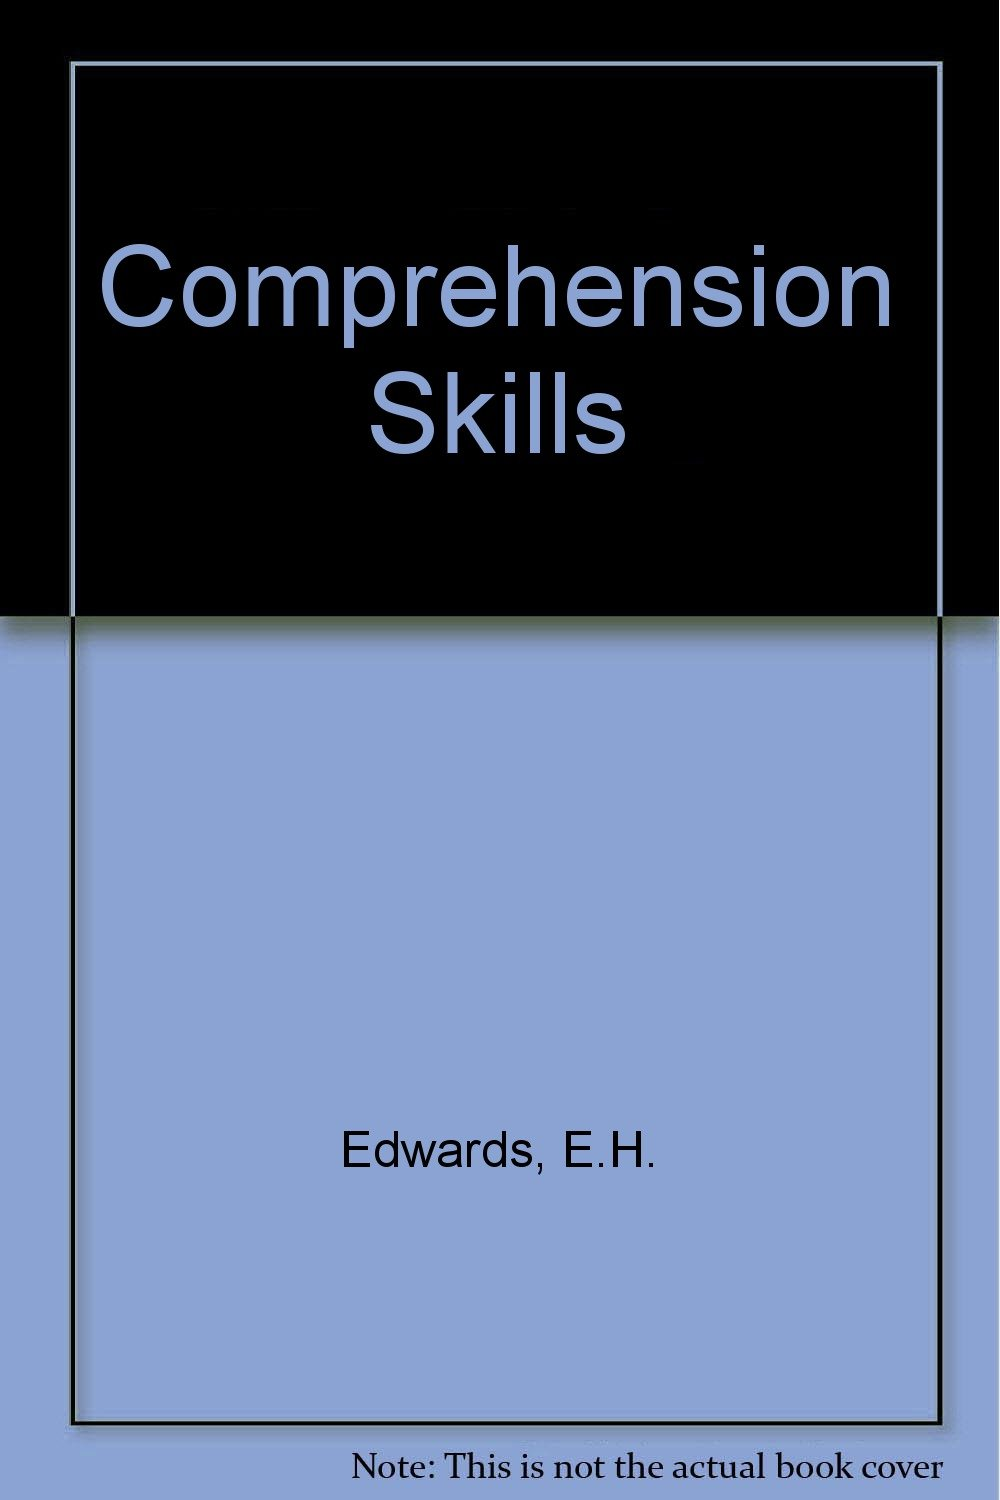 Comprehension skills by E.H.Edwards